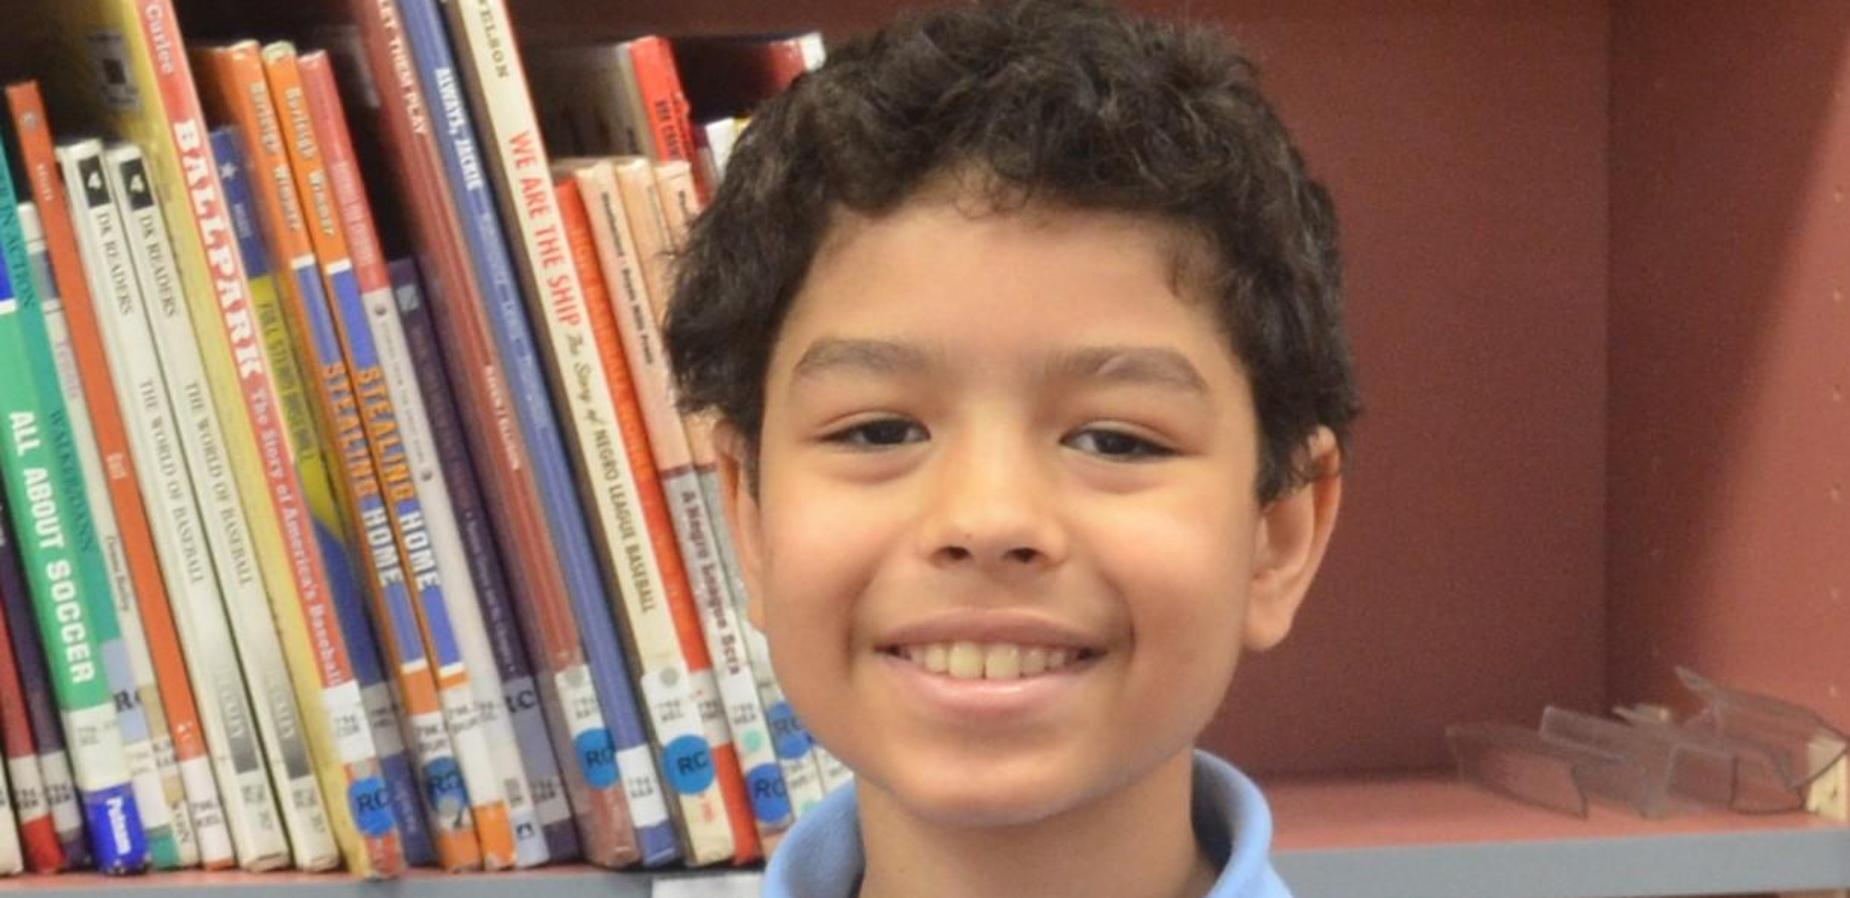 Congratulations to Ahmed El Bayoumi!! He scored a perfect score in math on the SC Ready Assessment!!